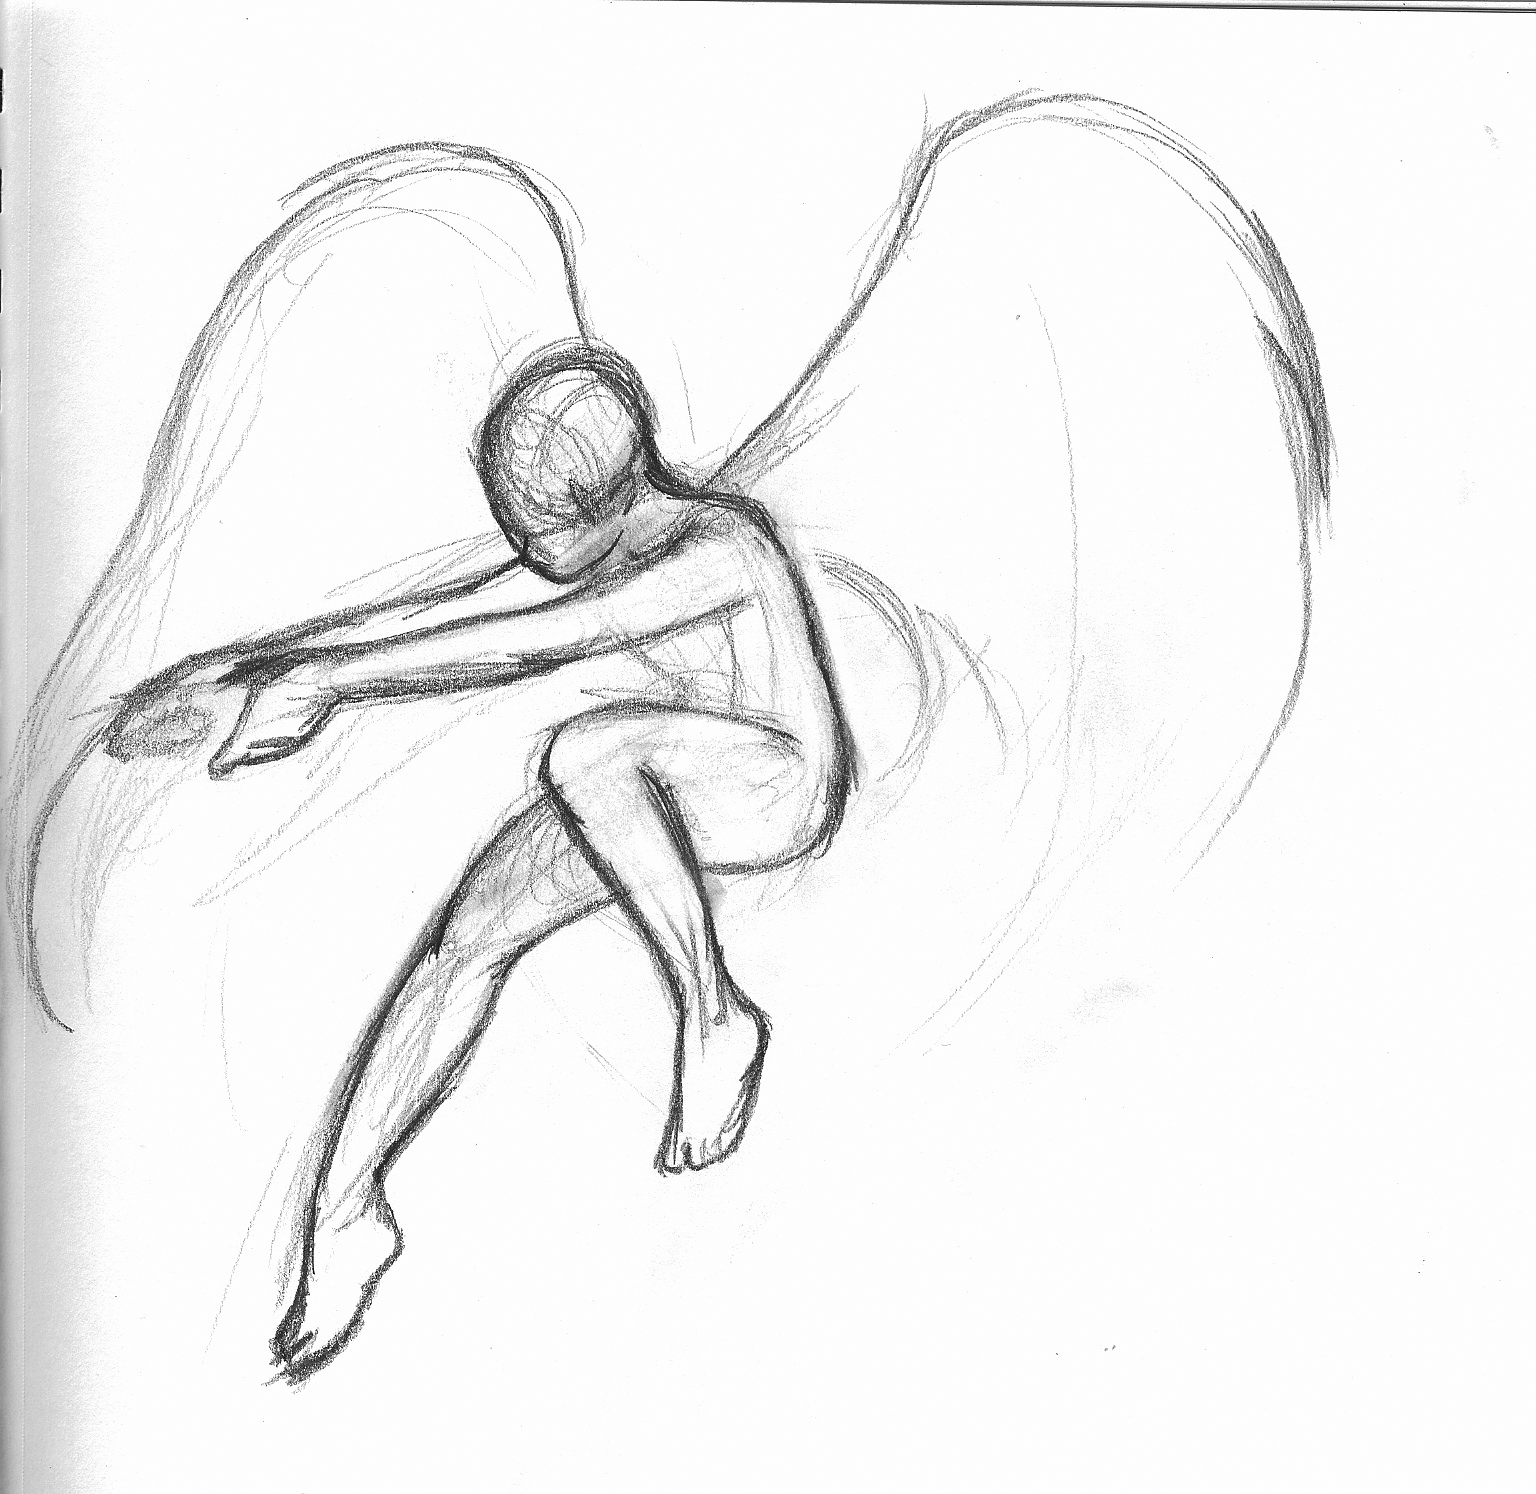 drawings drawing flying wings cool sketch depression sketches angel desenho easy poses tutorial fly dancarina different anatomy getdrawings flight danish